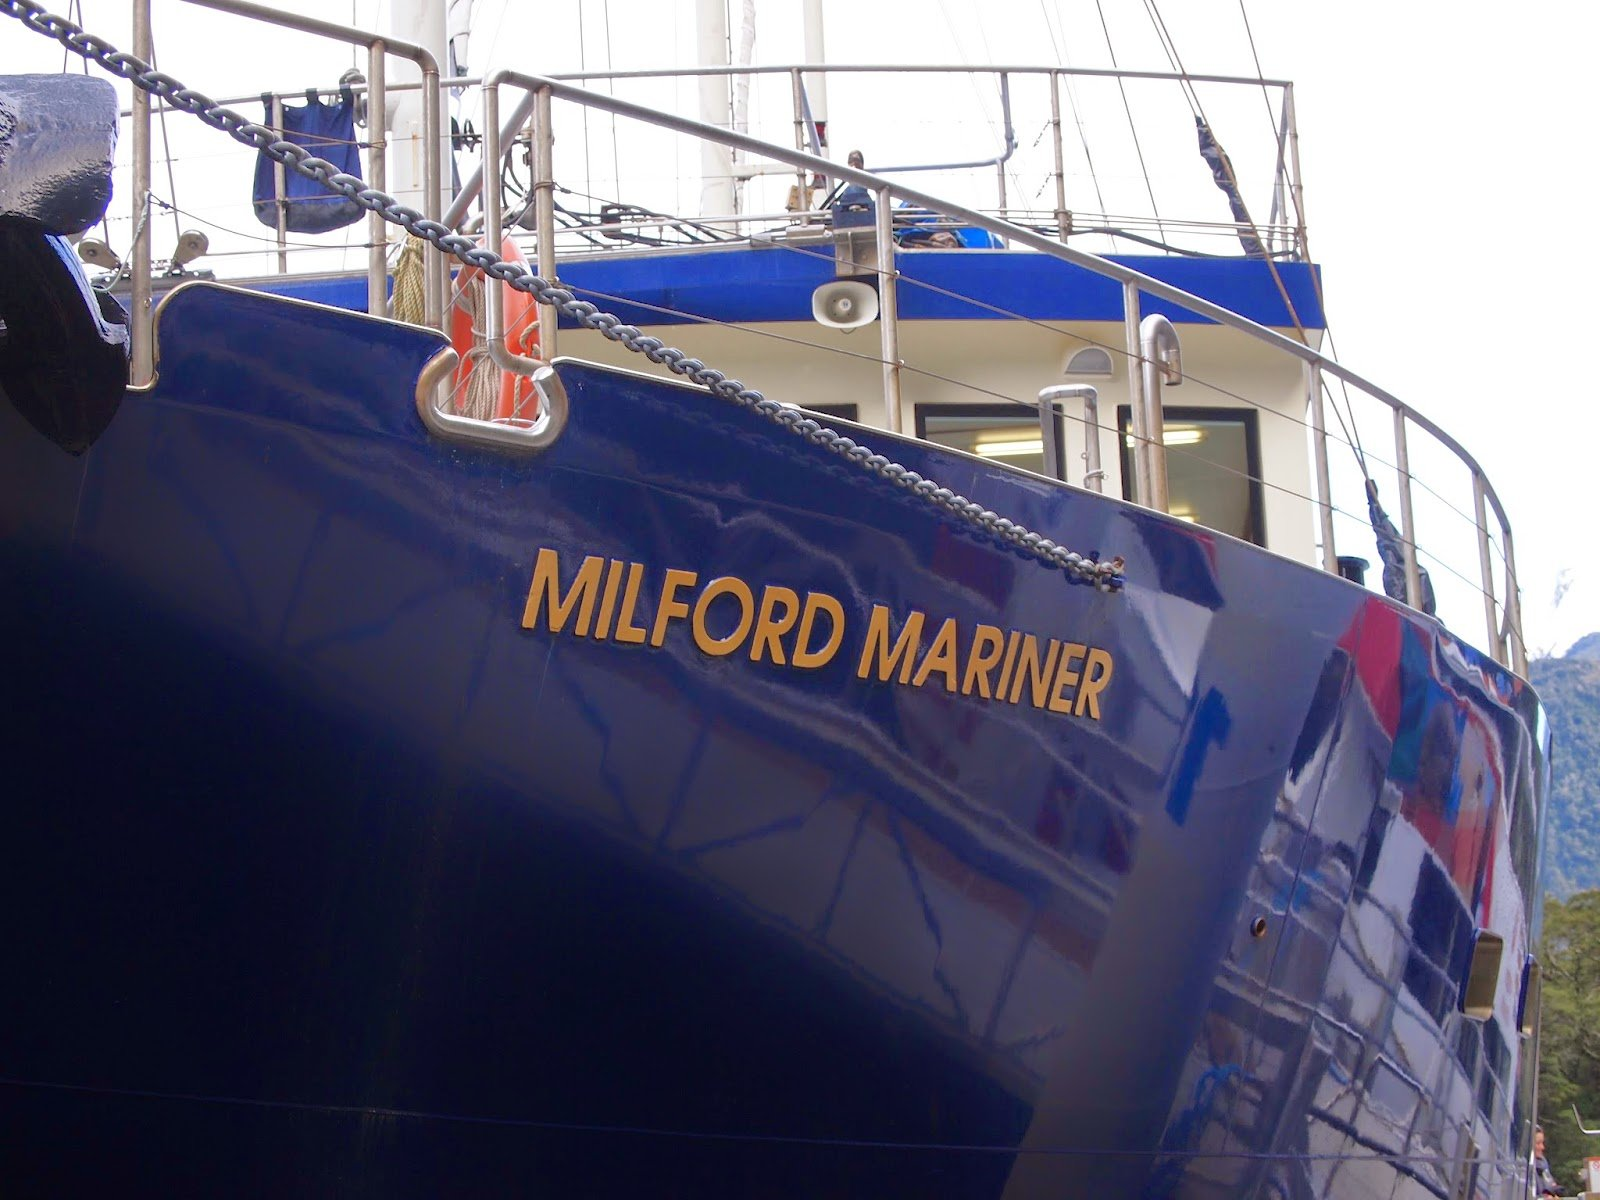 Milford Mariner Real Journeys